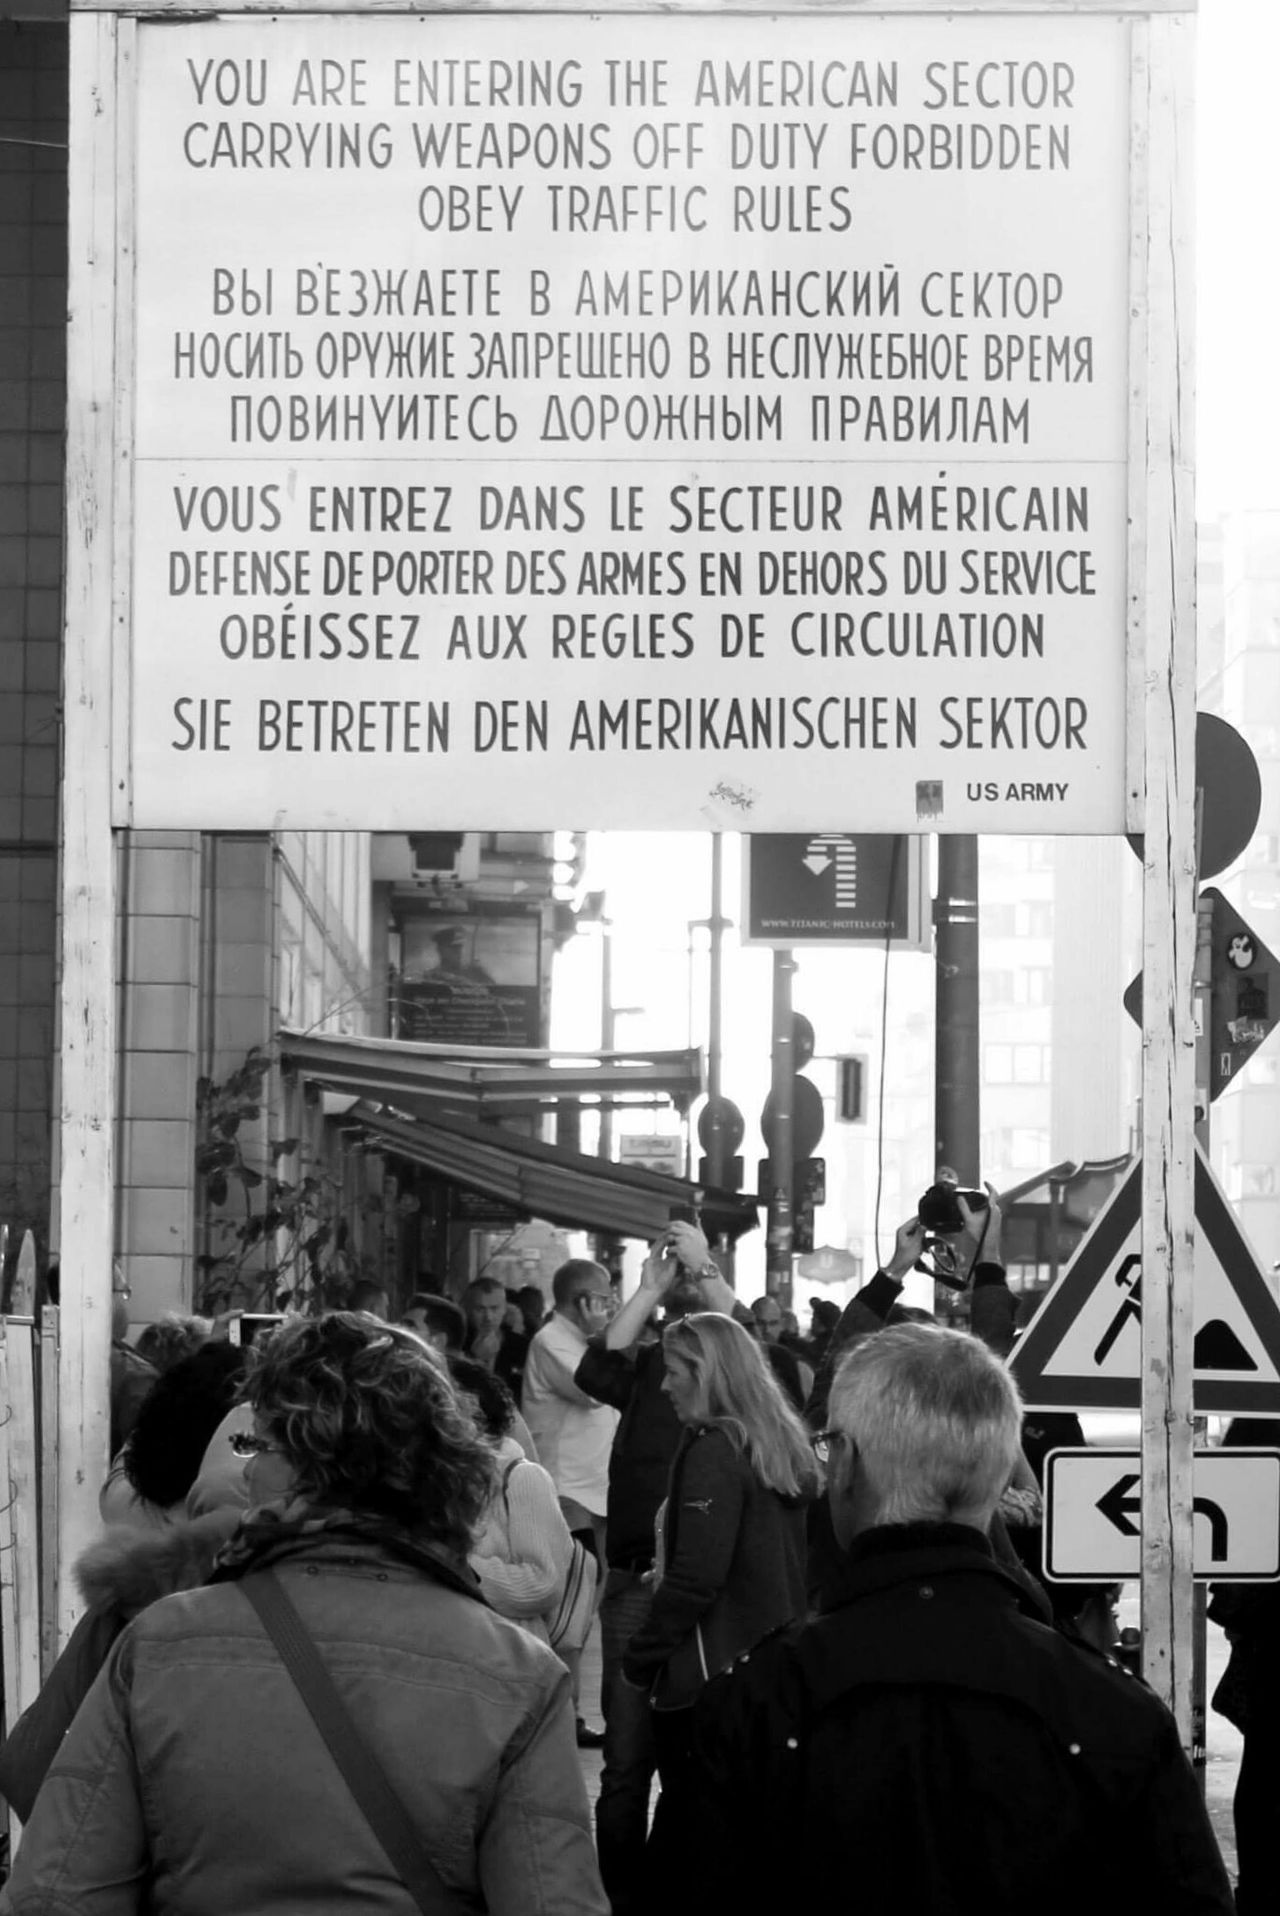 Under Pressure Berlin Checkpointcharlie Europe Germany Usarmy